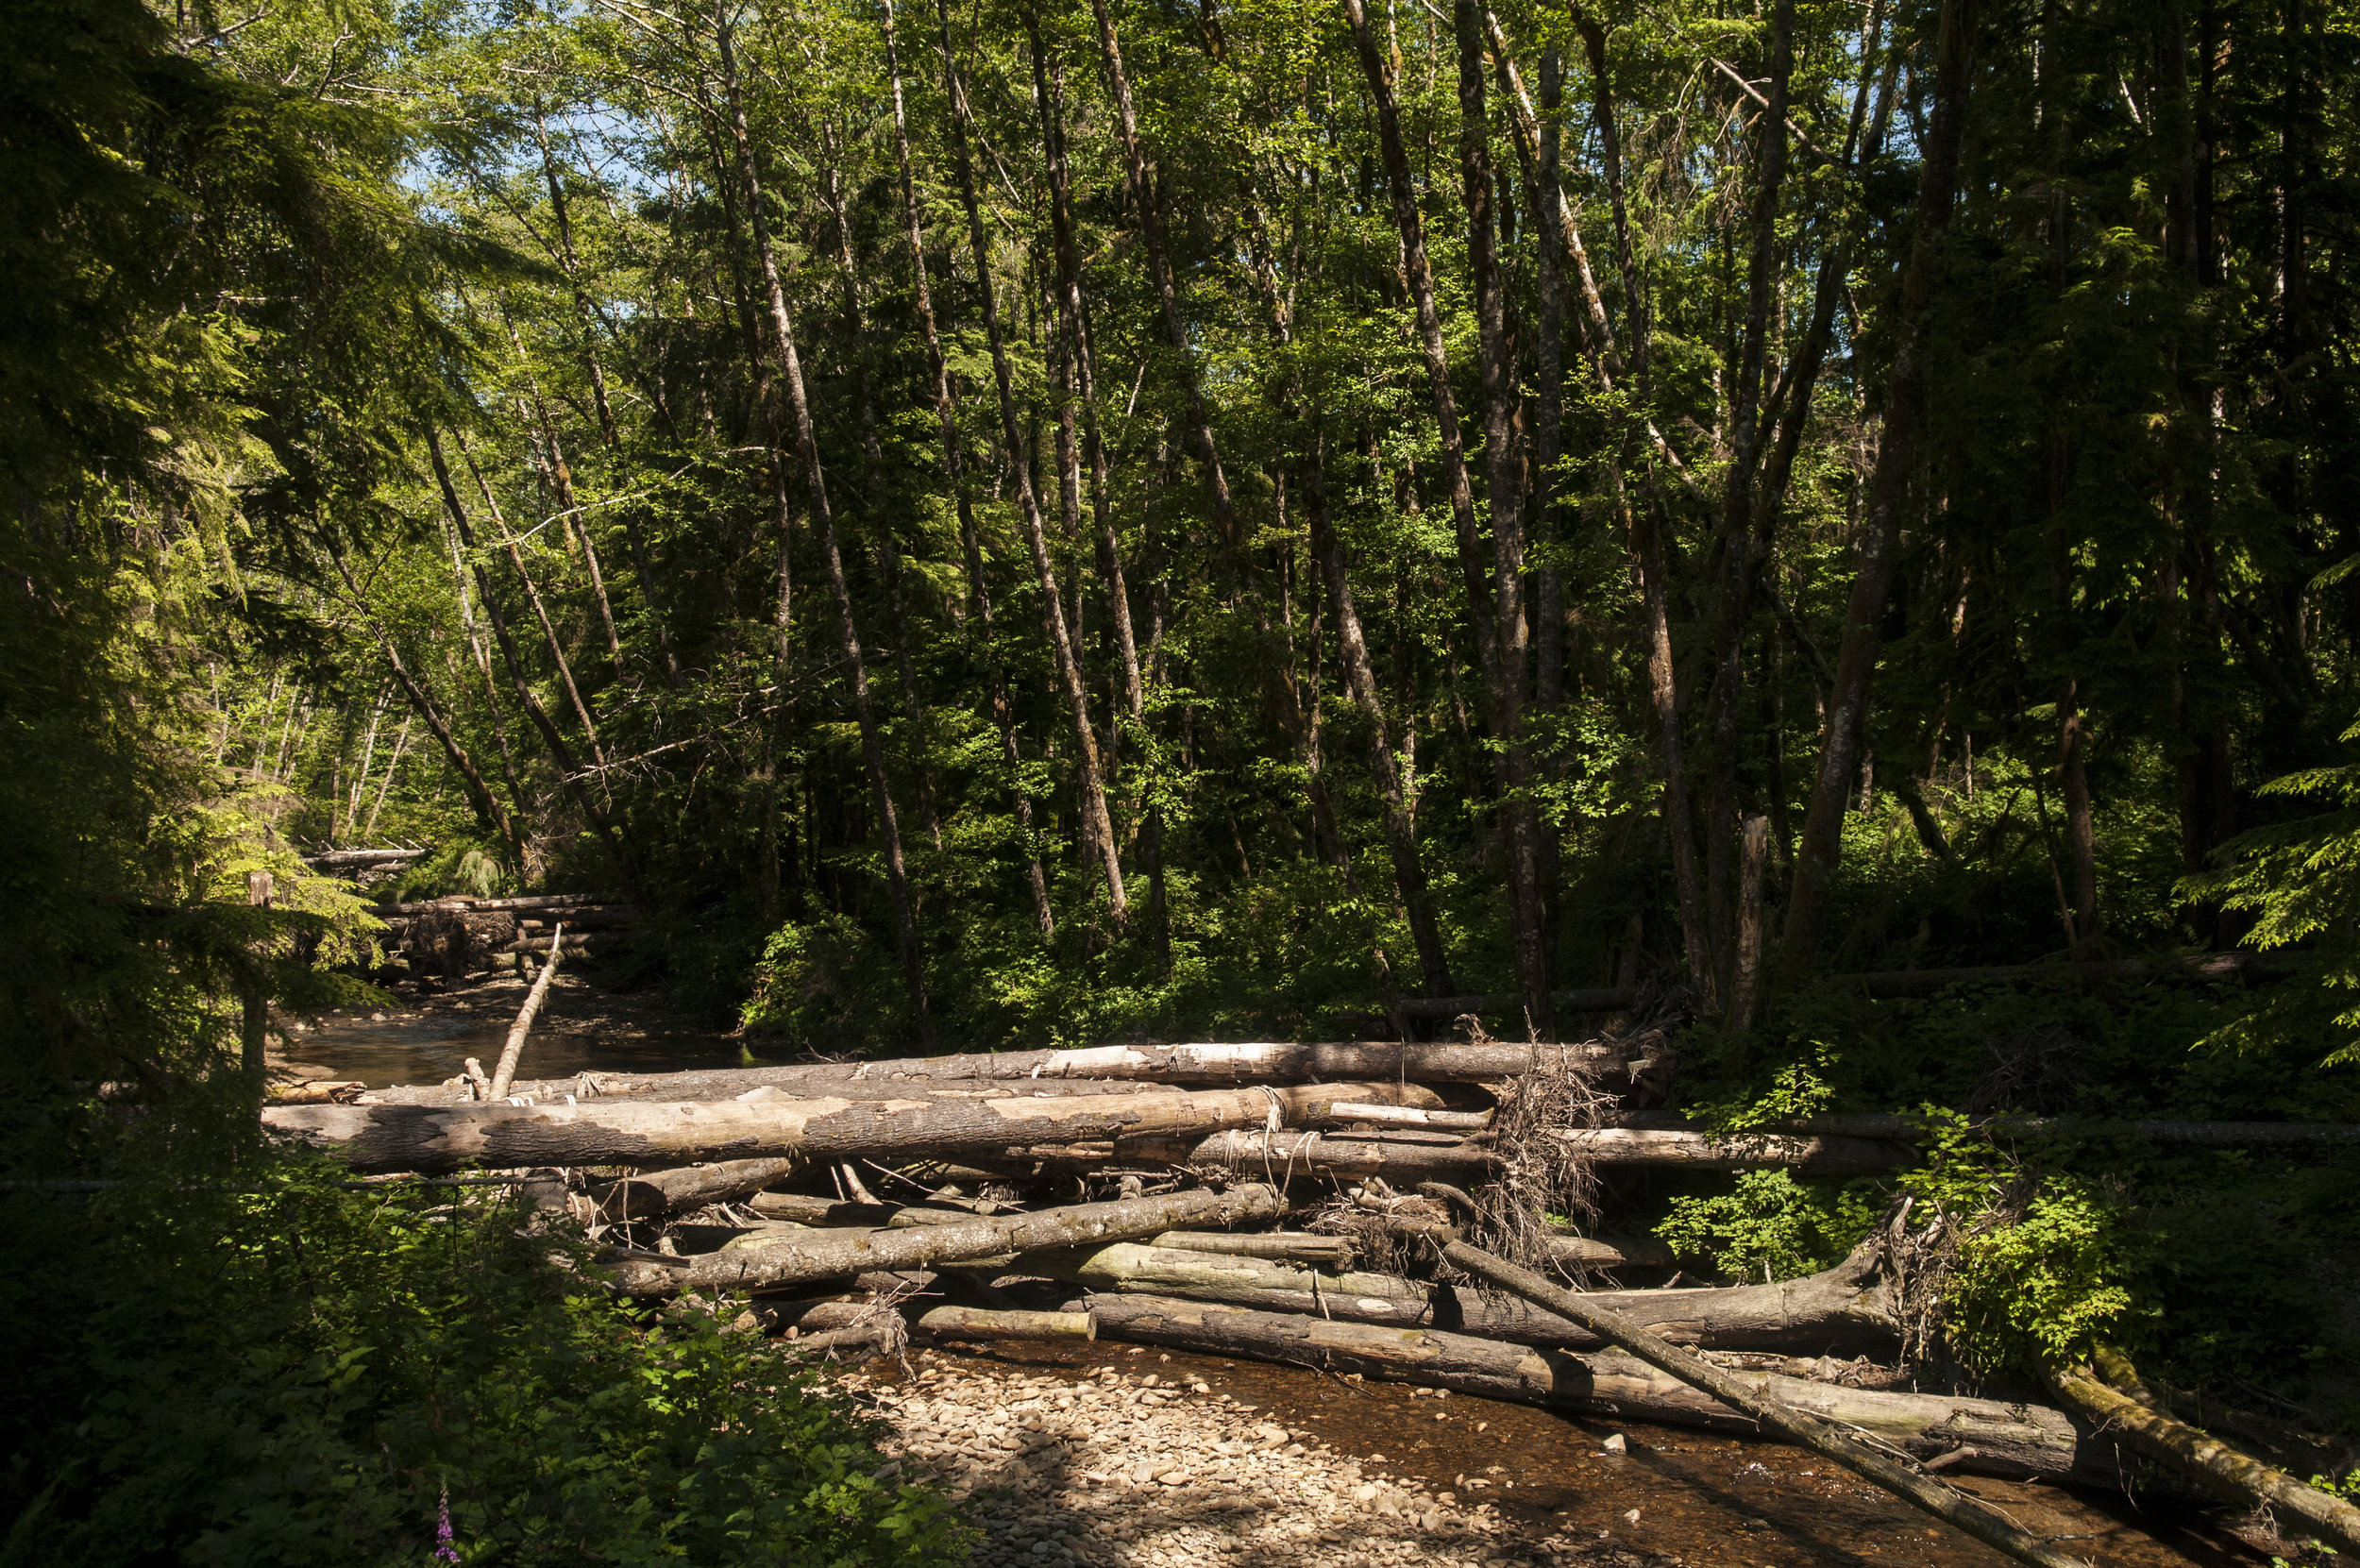 A Hurst Creek log jam in summer 2017. Photo © Nikolaj Lasbo / TNC